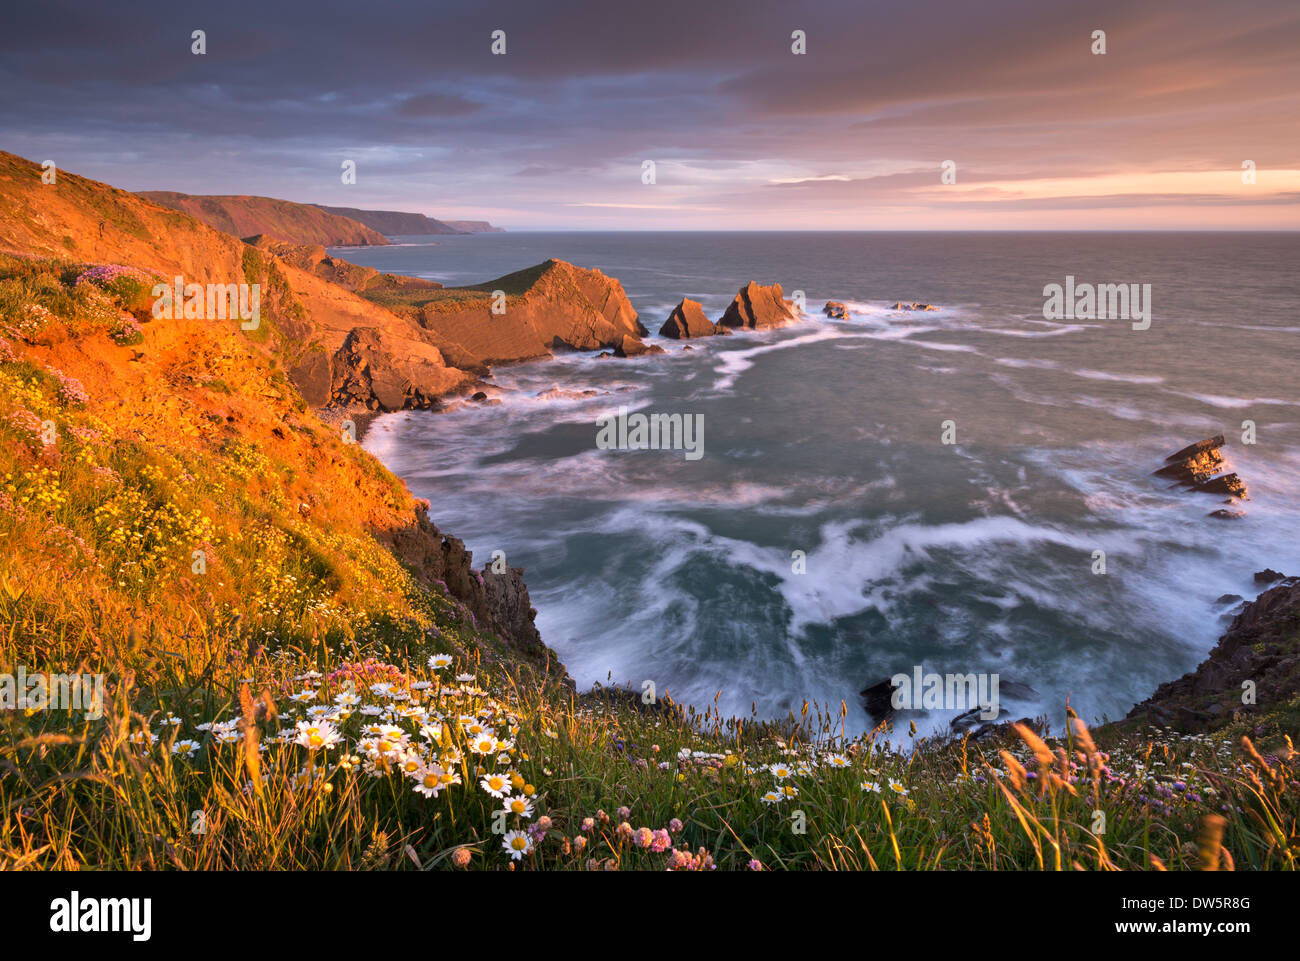 Glorious evening sunlight illuminates the dramatic cliffs of Hartland Quay, looking towards Screda Point, Devon, England. - Stock Image